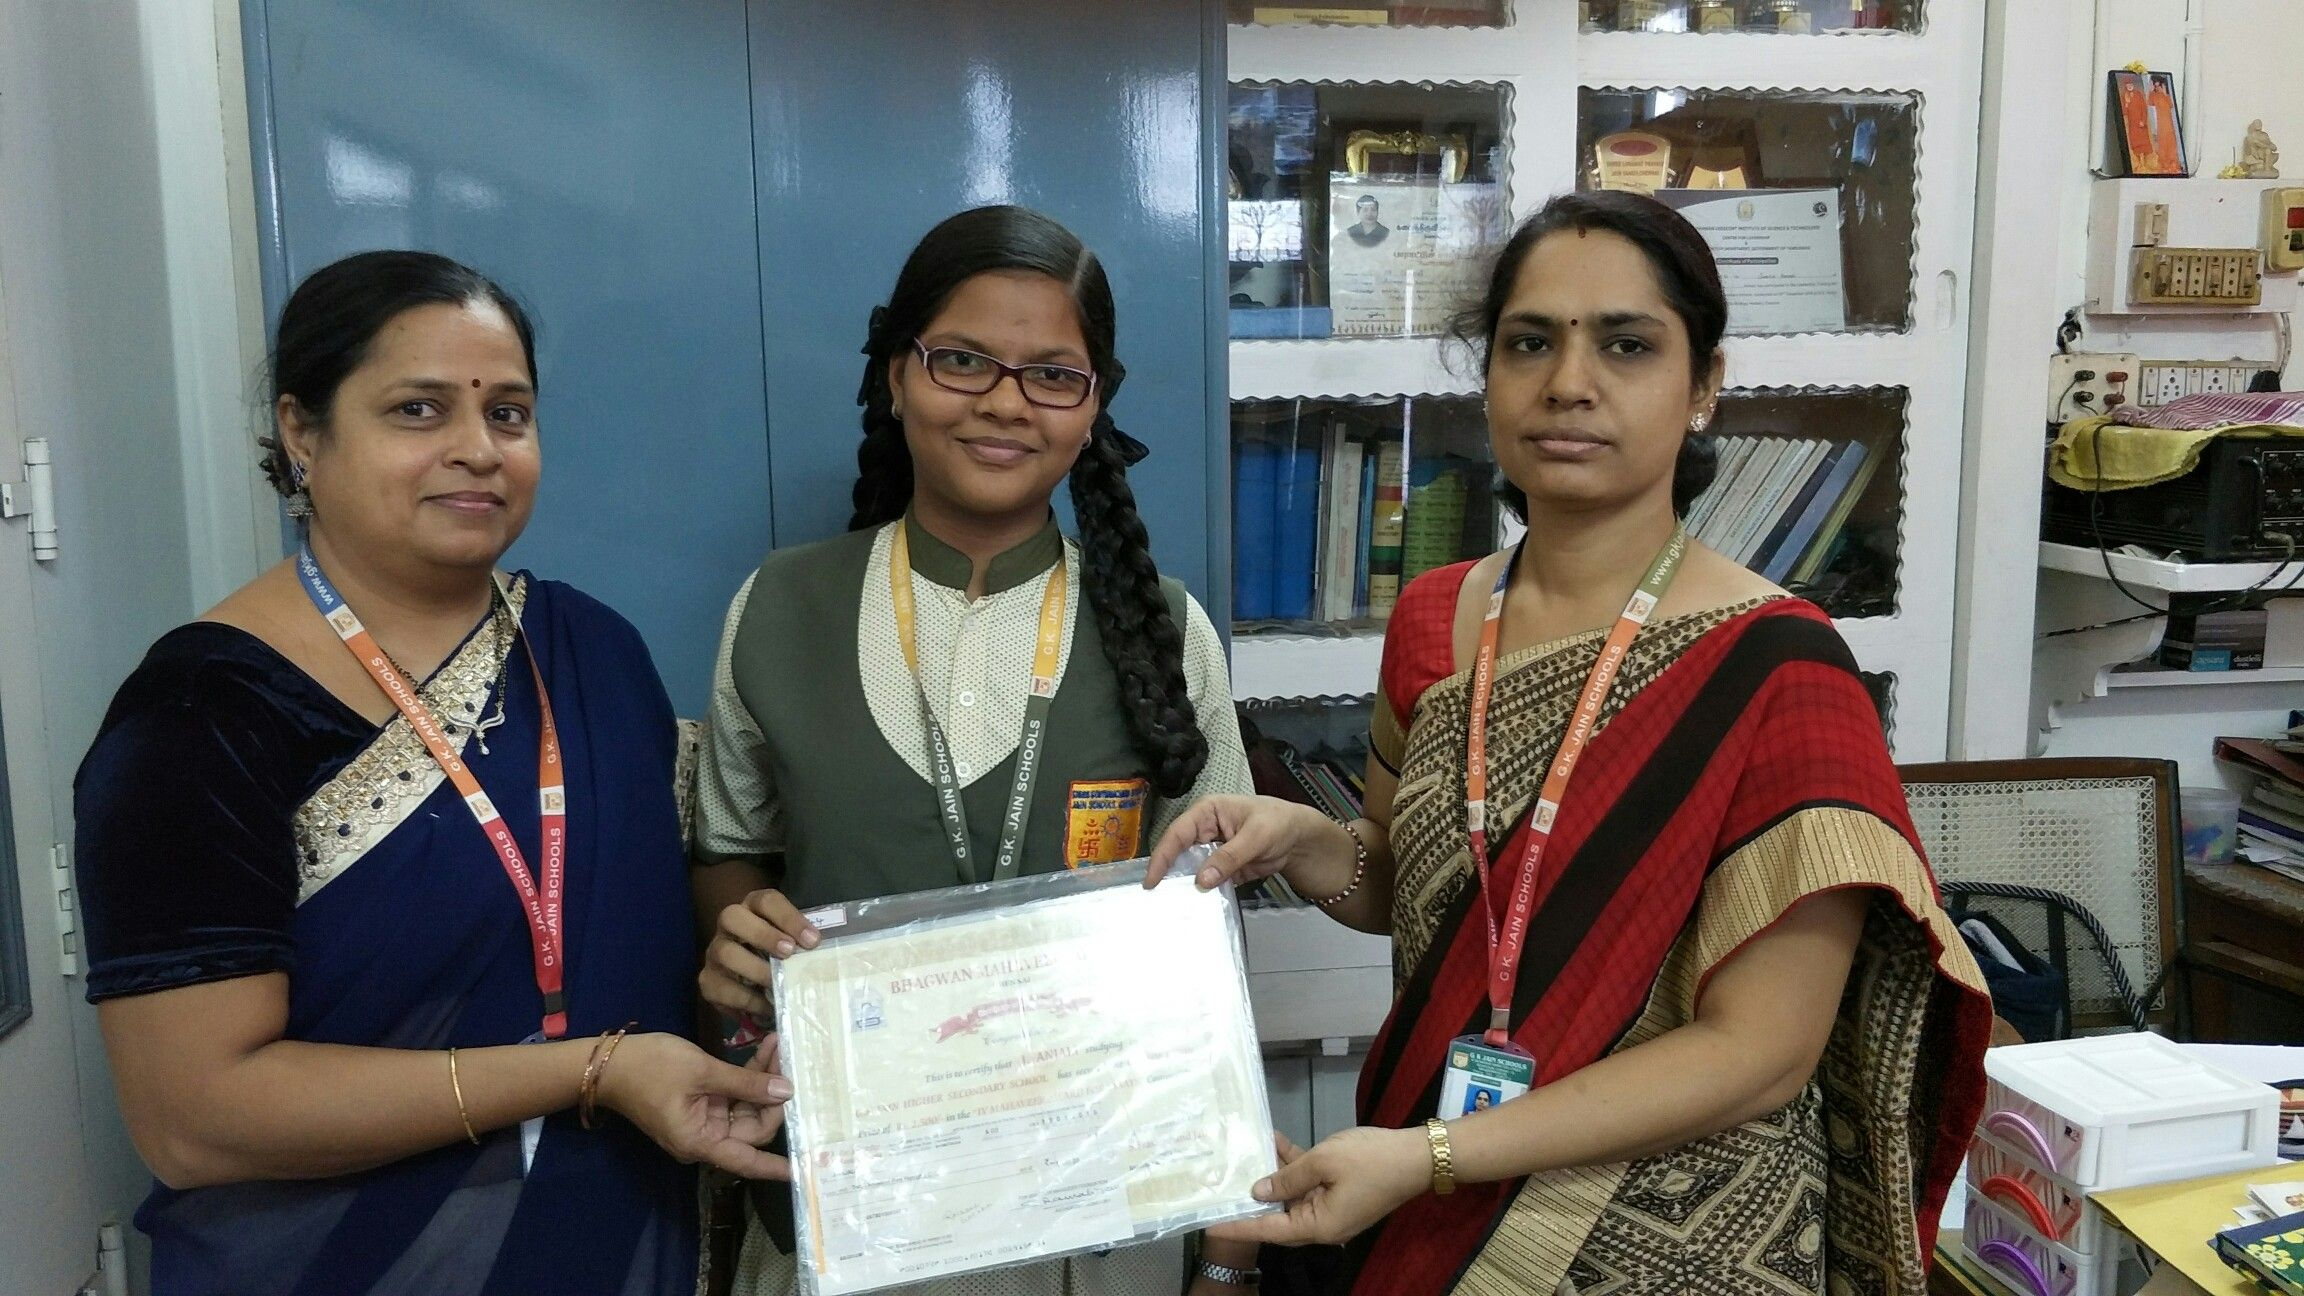 Anjali of class x received rs 2500 from bhgwan mahaveer